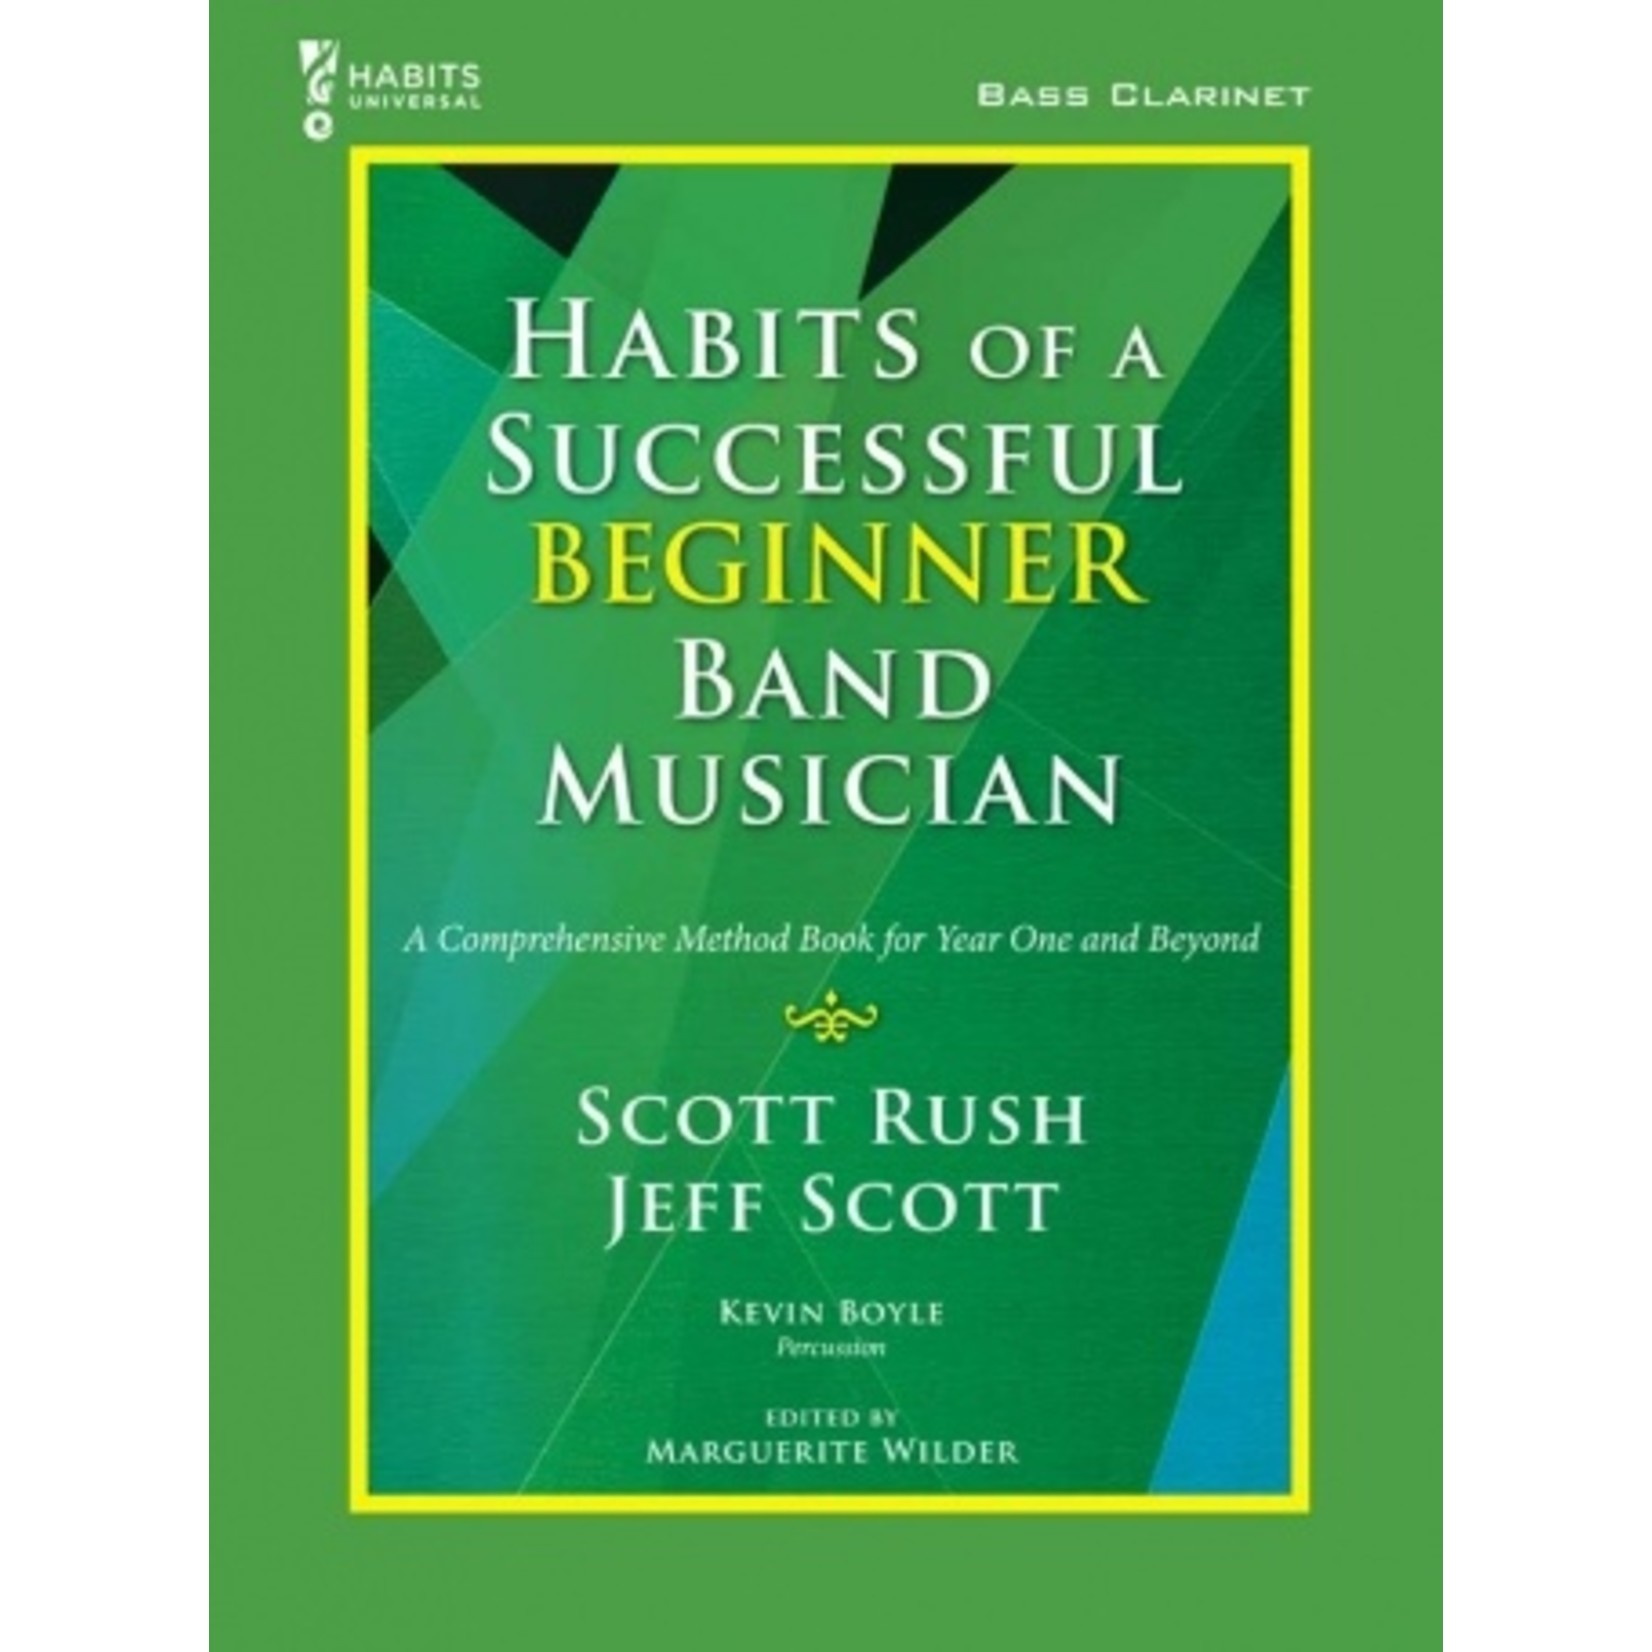 Habits of a Successful Beginner Band Musician - Bass Clarinet